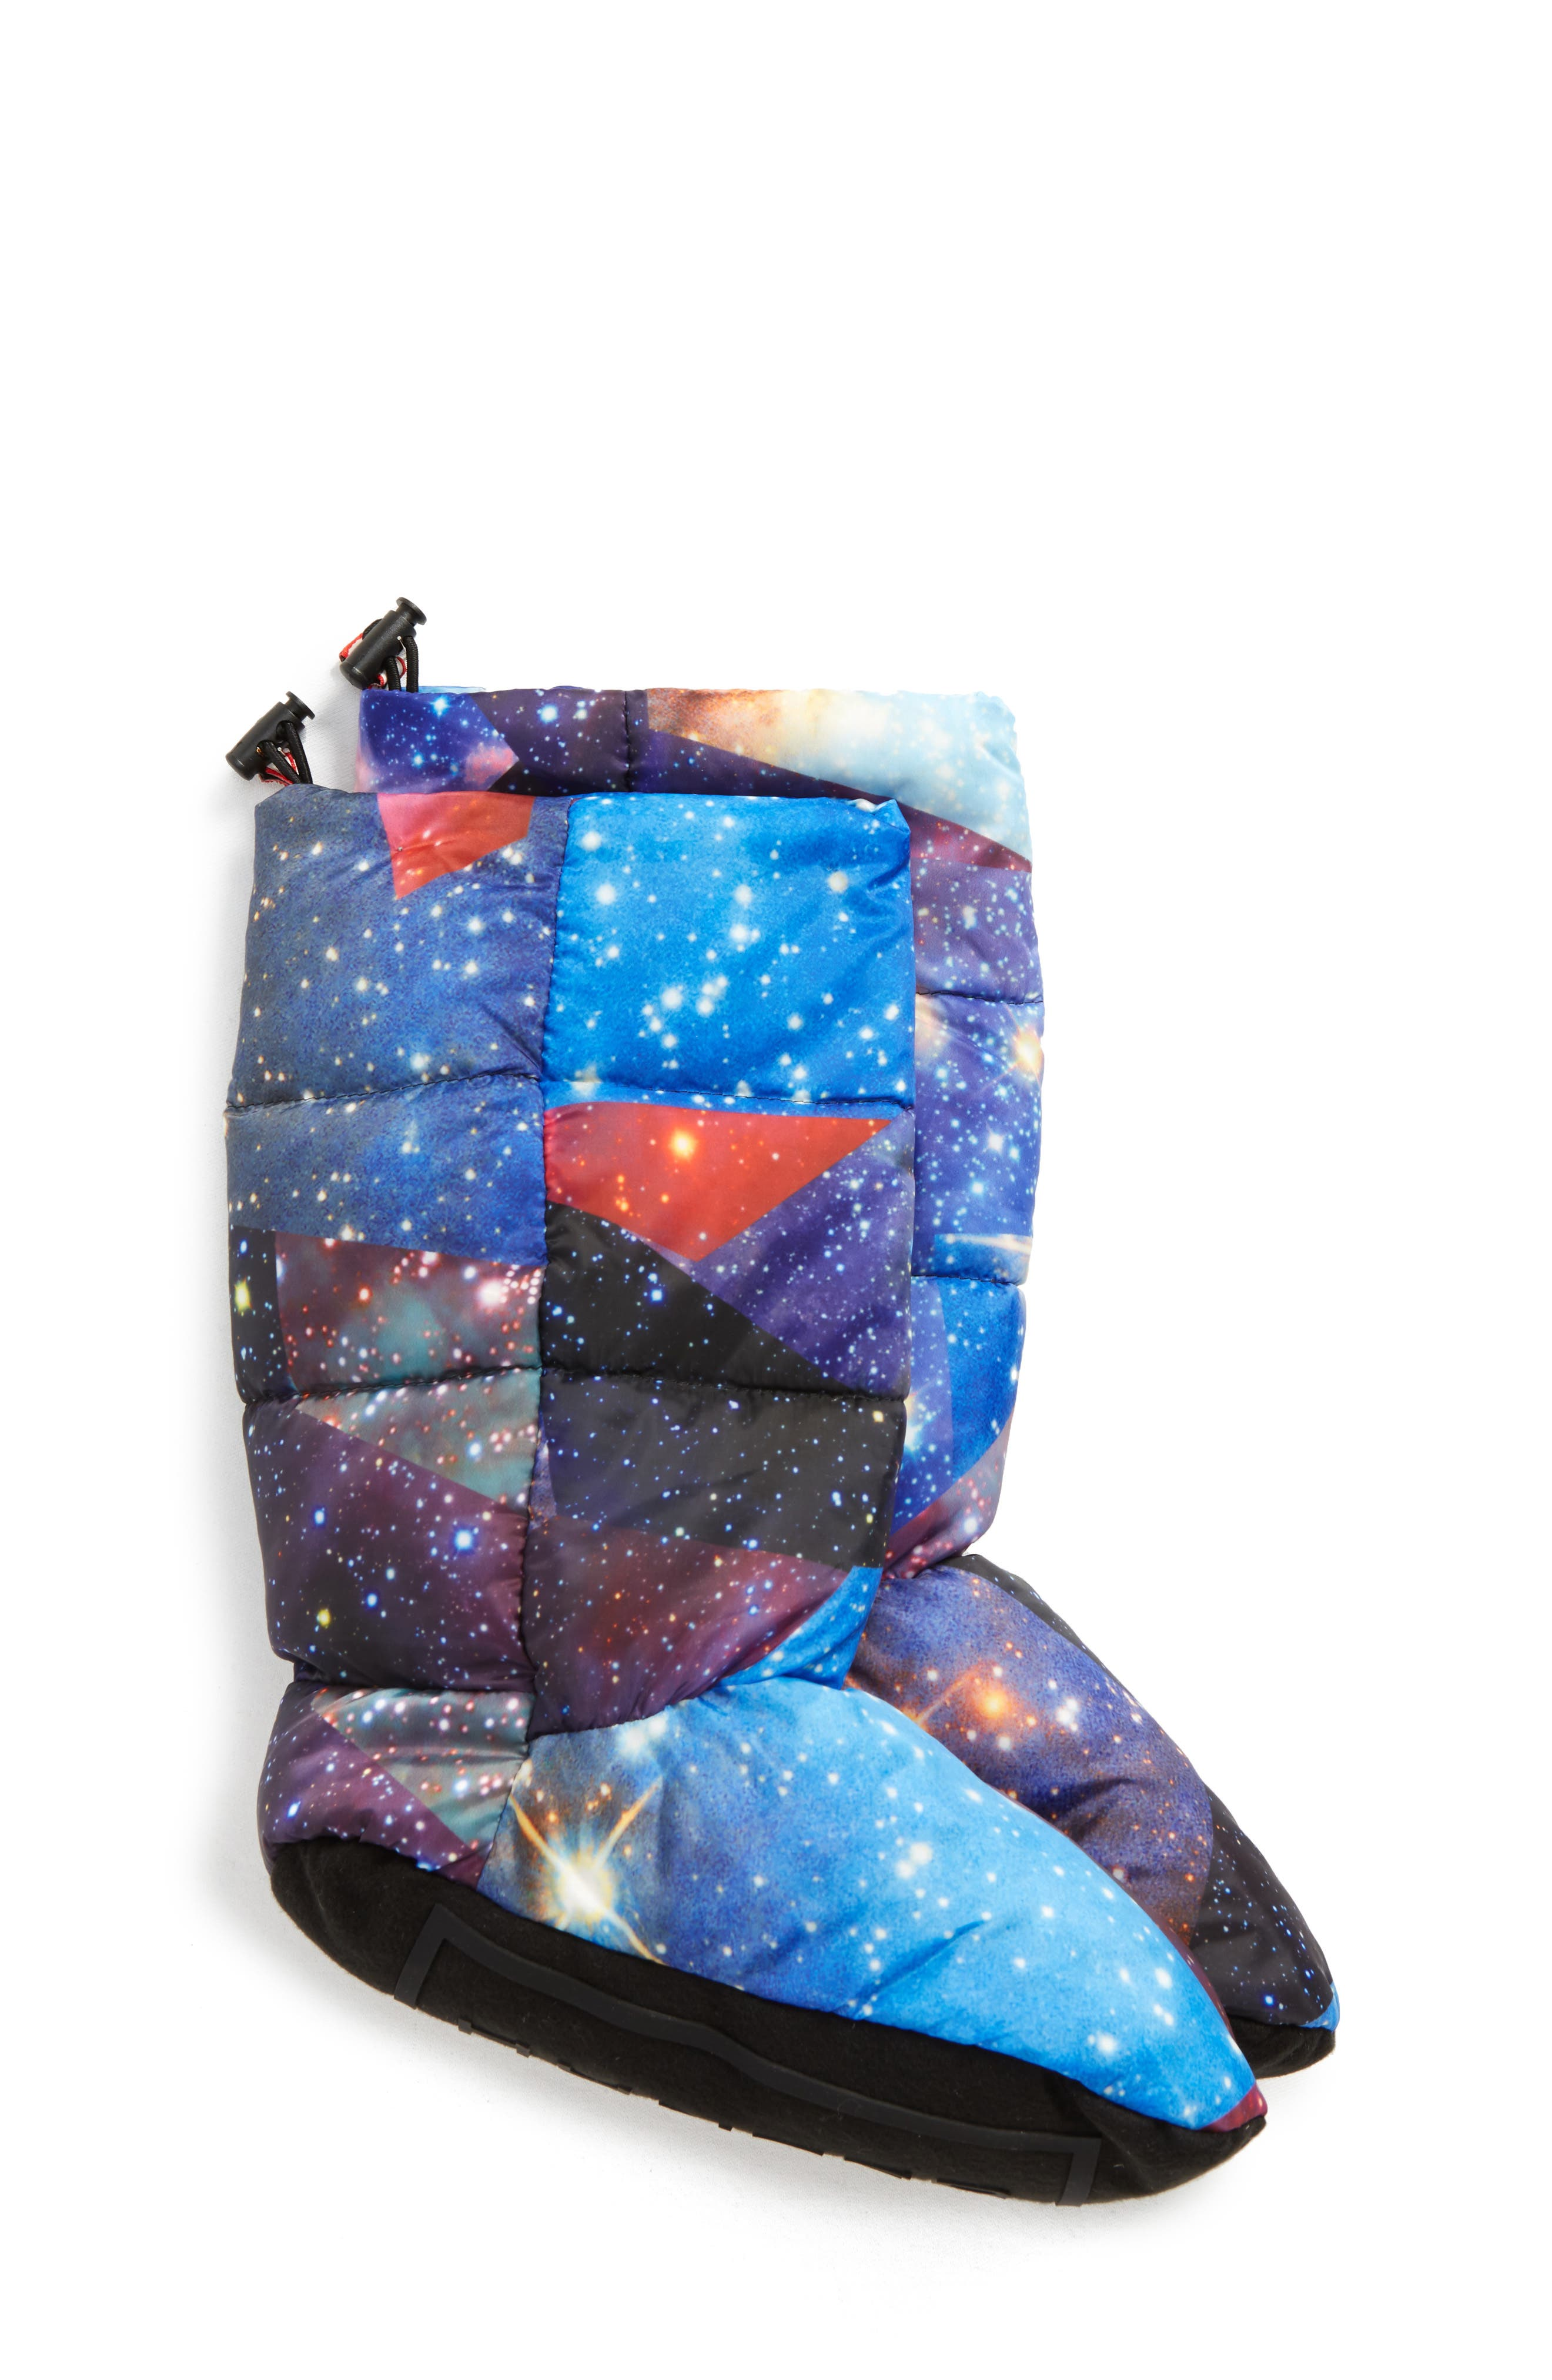 Down Insulated Boot Socks,                         Main,                         color, Space Camo